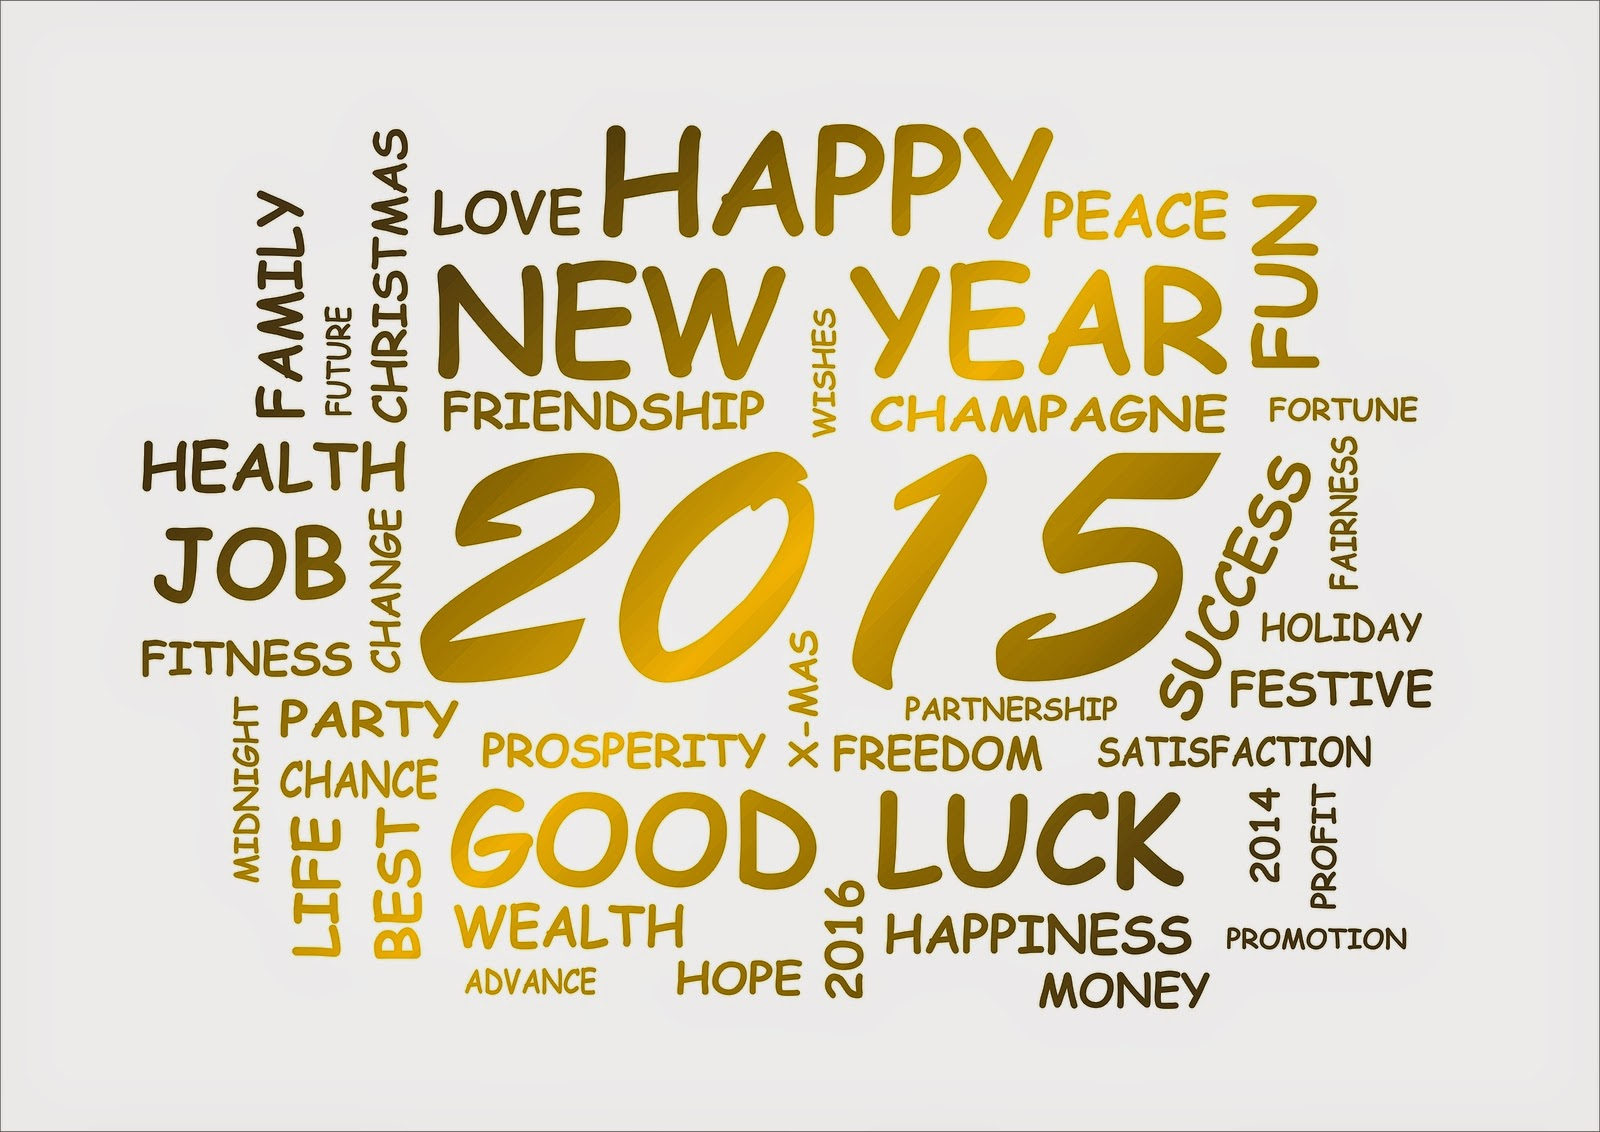 Wallpaper HD Happy New Year 2015